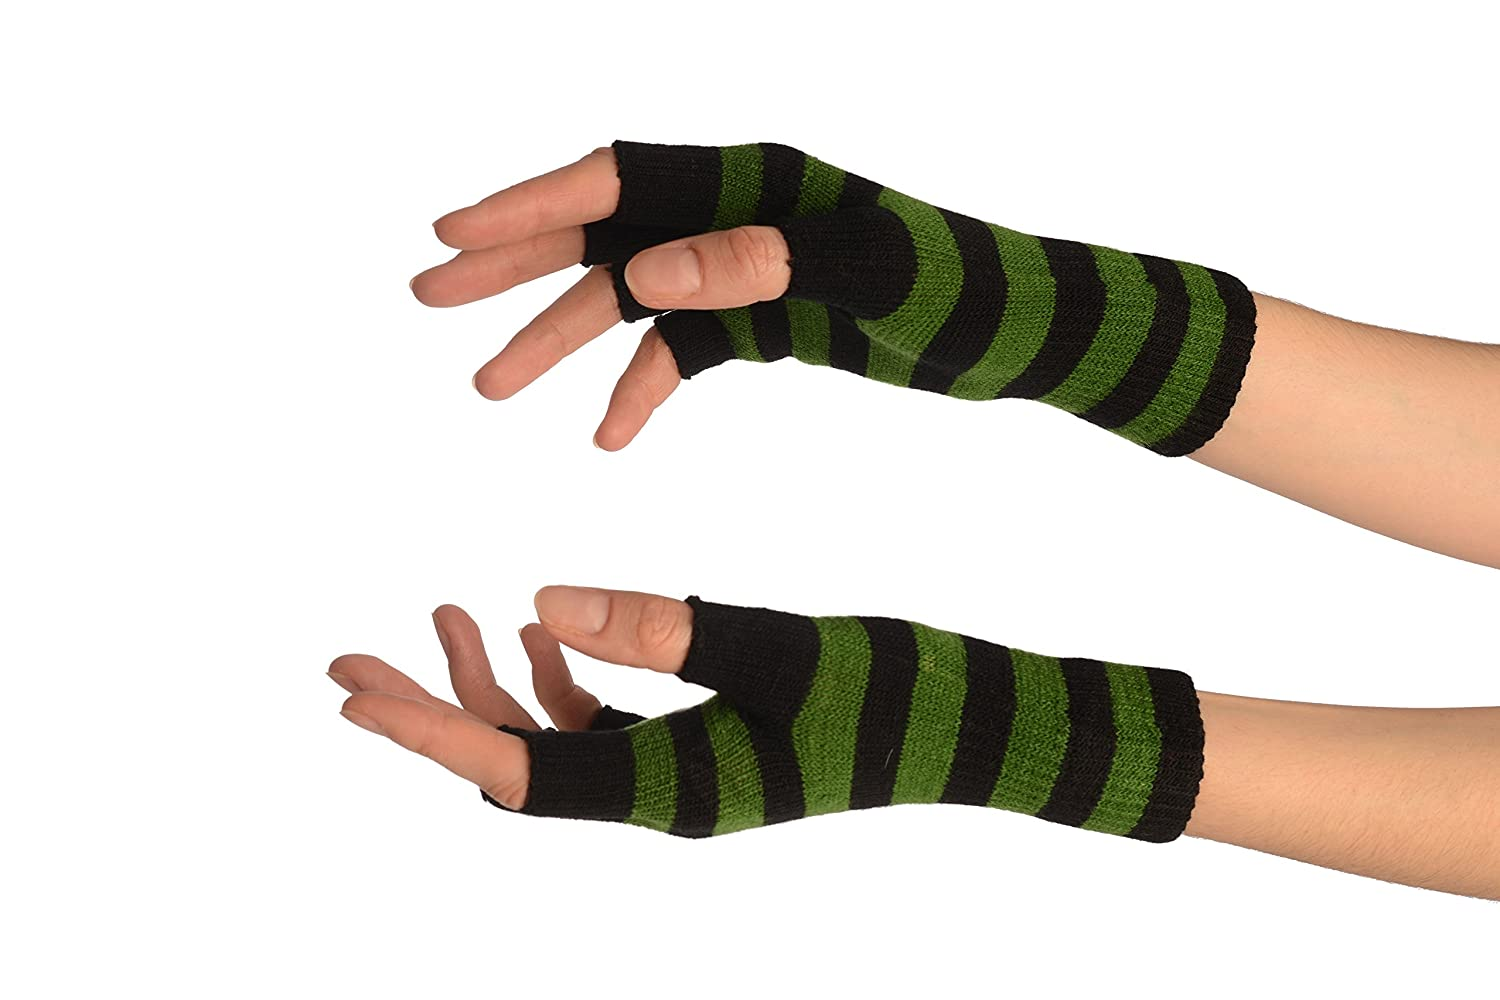 Green & Black Stripes Short Fingerless Gloves - Gloves